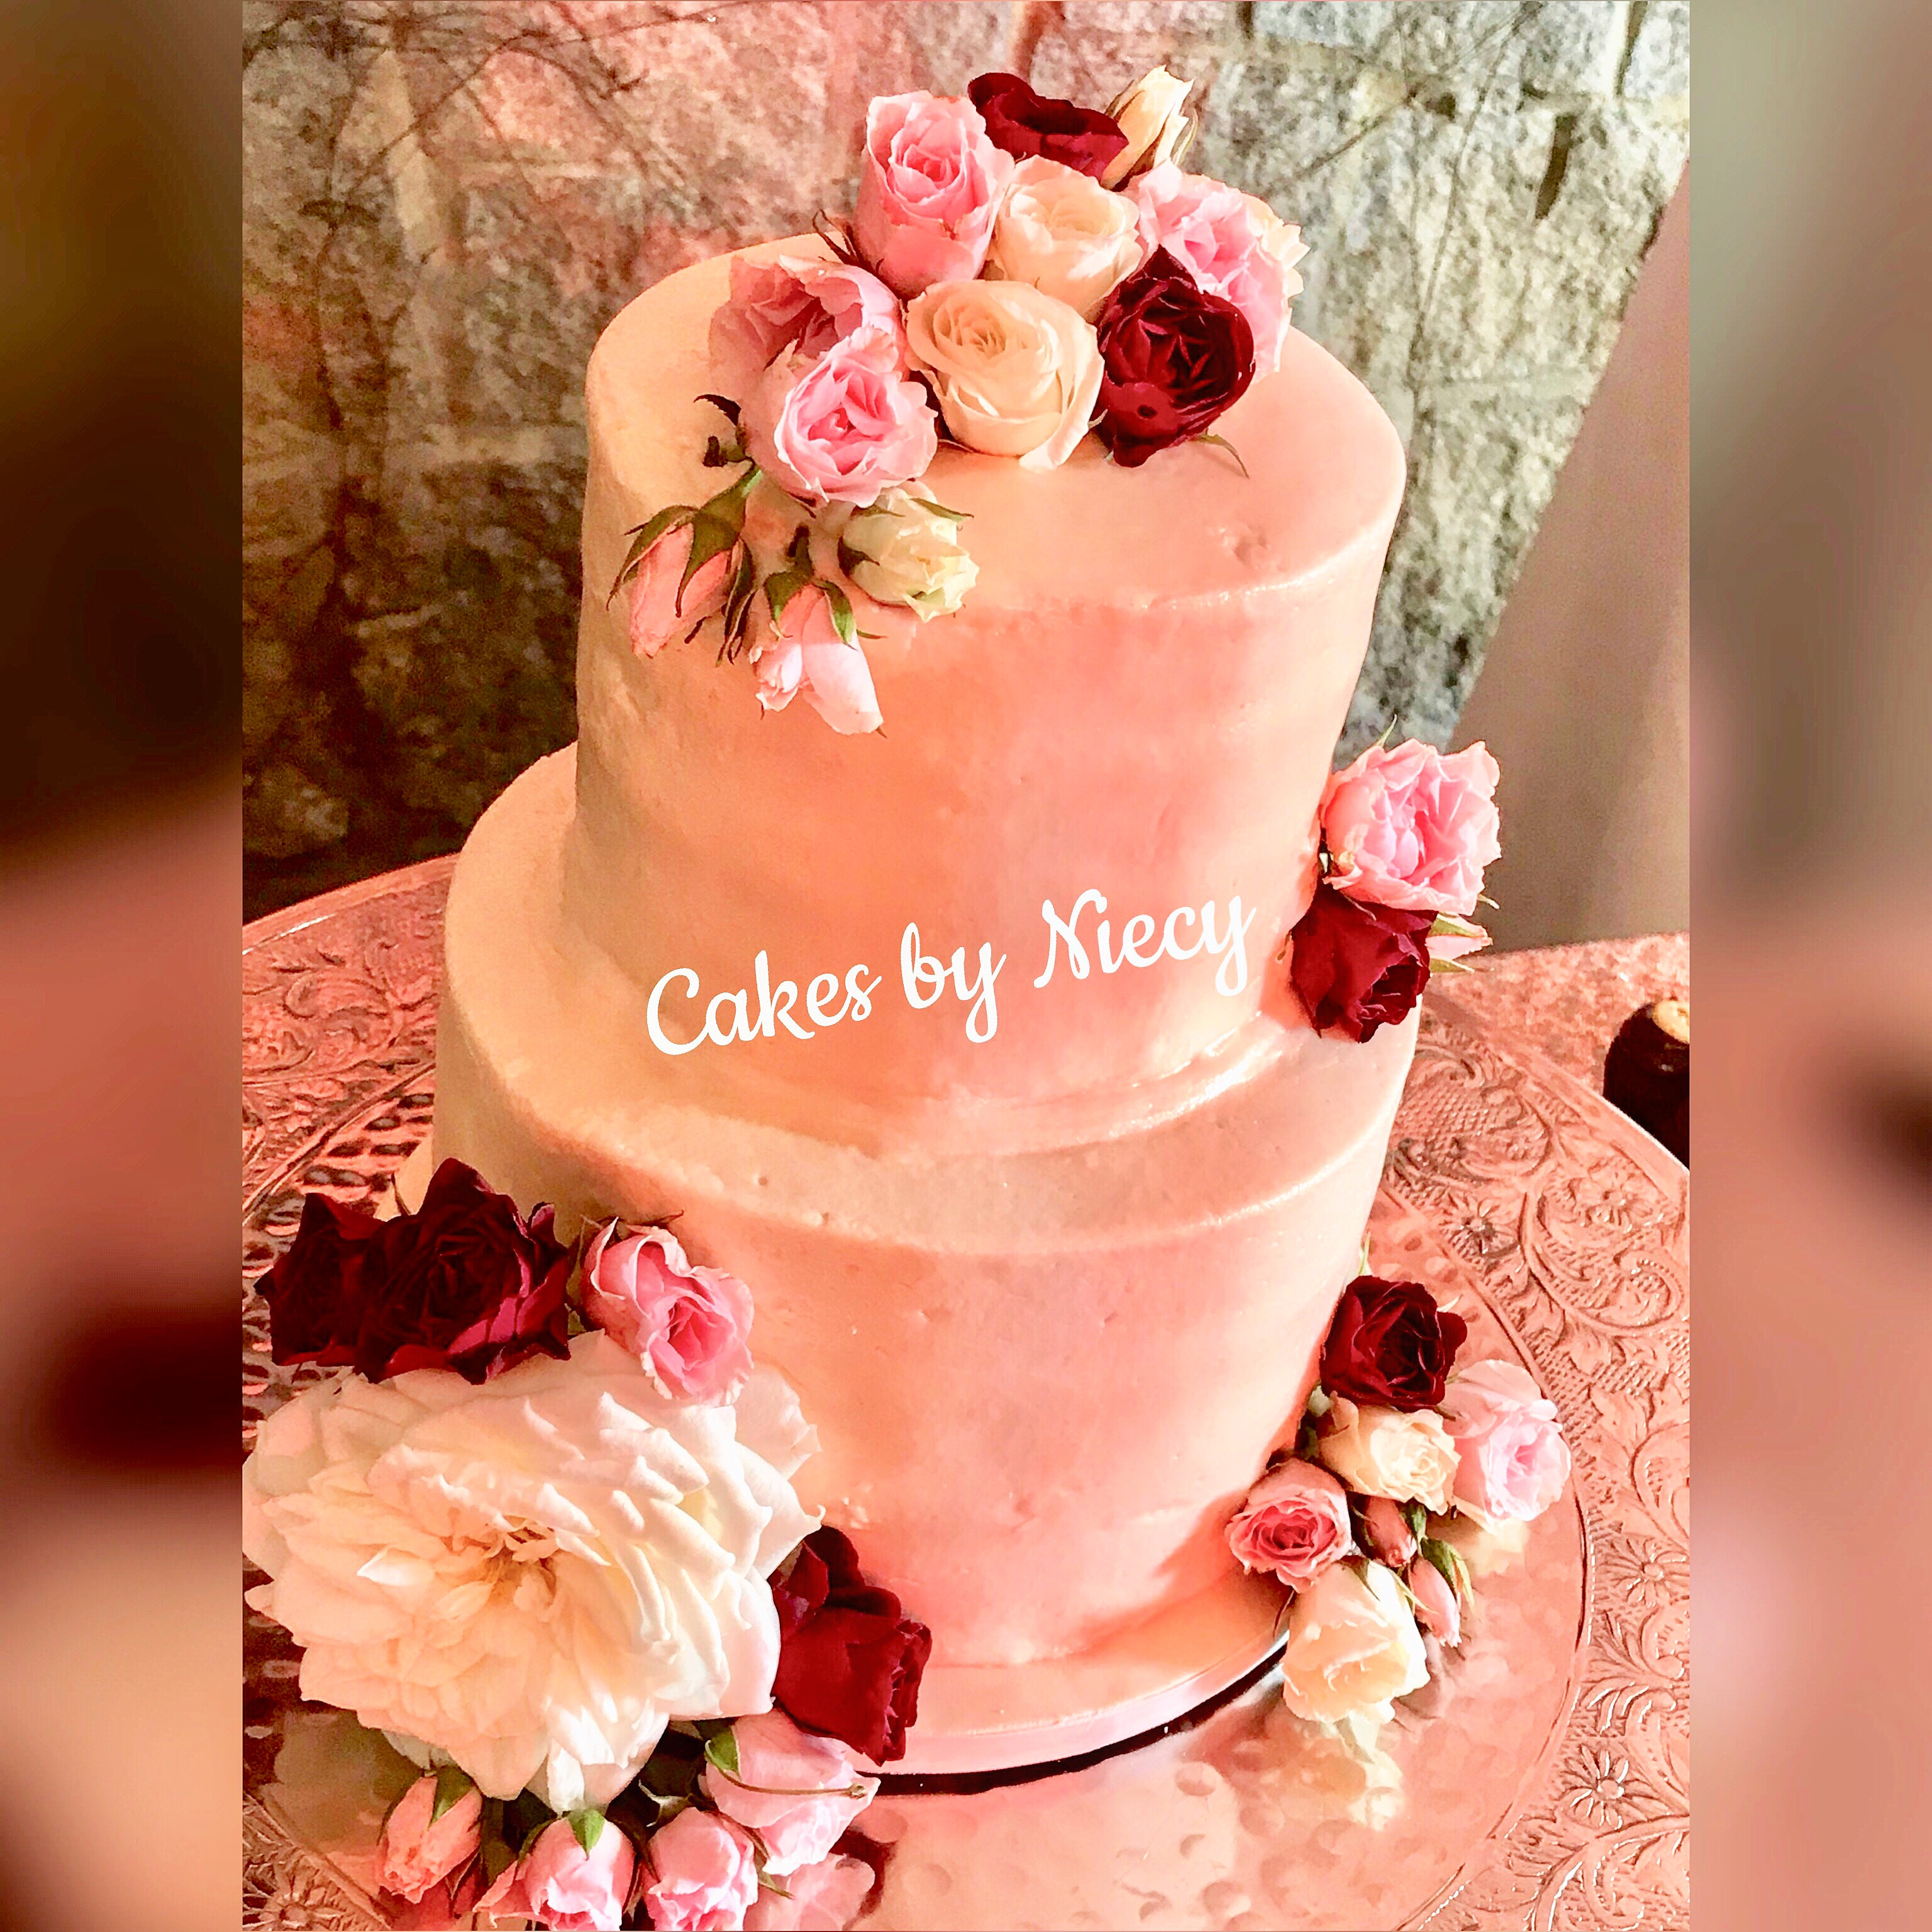 Cakes by Niecy - Black Owned